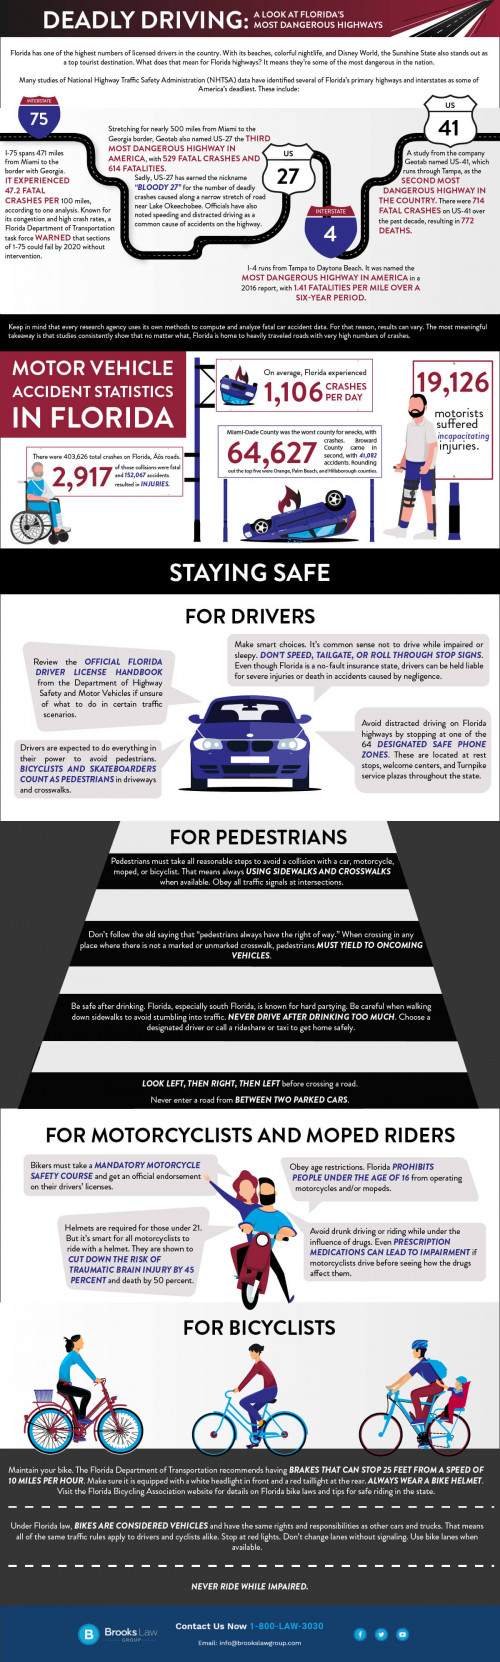 Brooks-Law-Group-Mostly-Deadly-Highways-Florida-Infographic.jpg